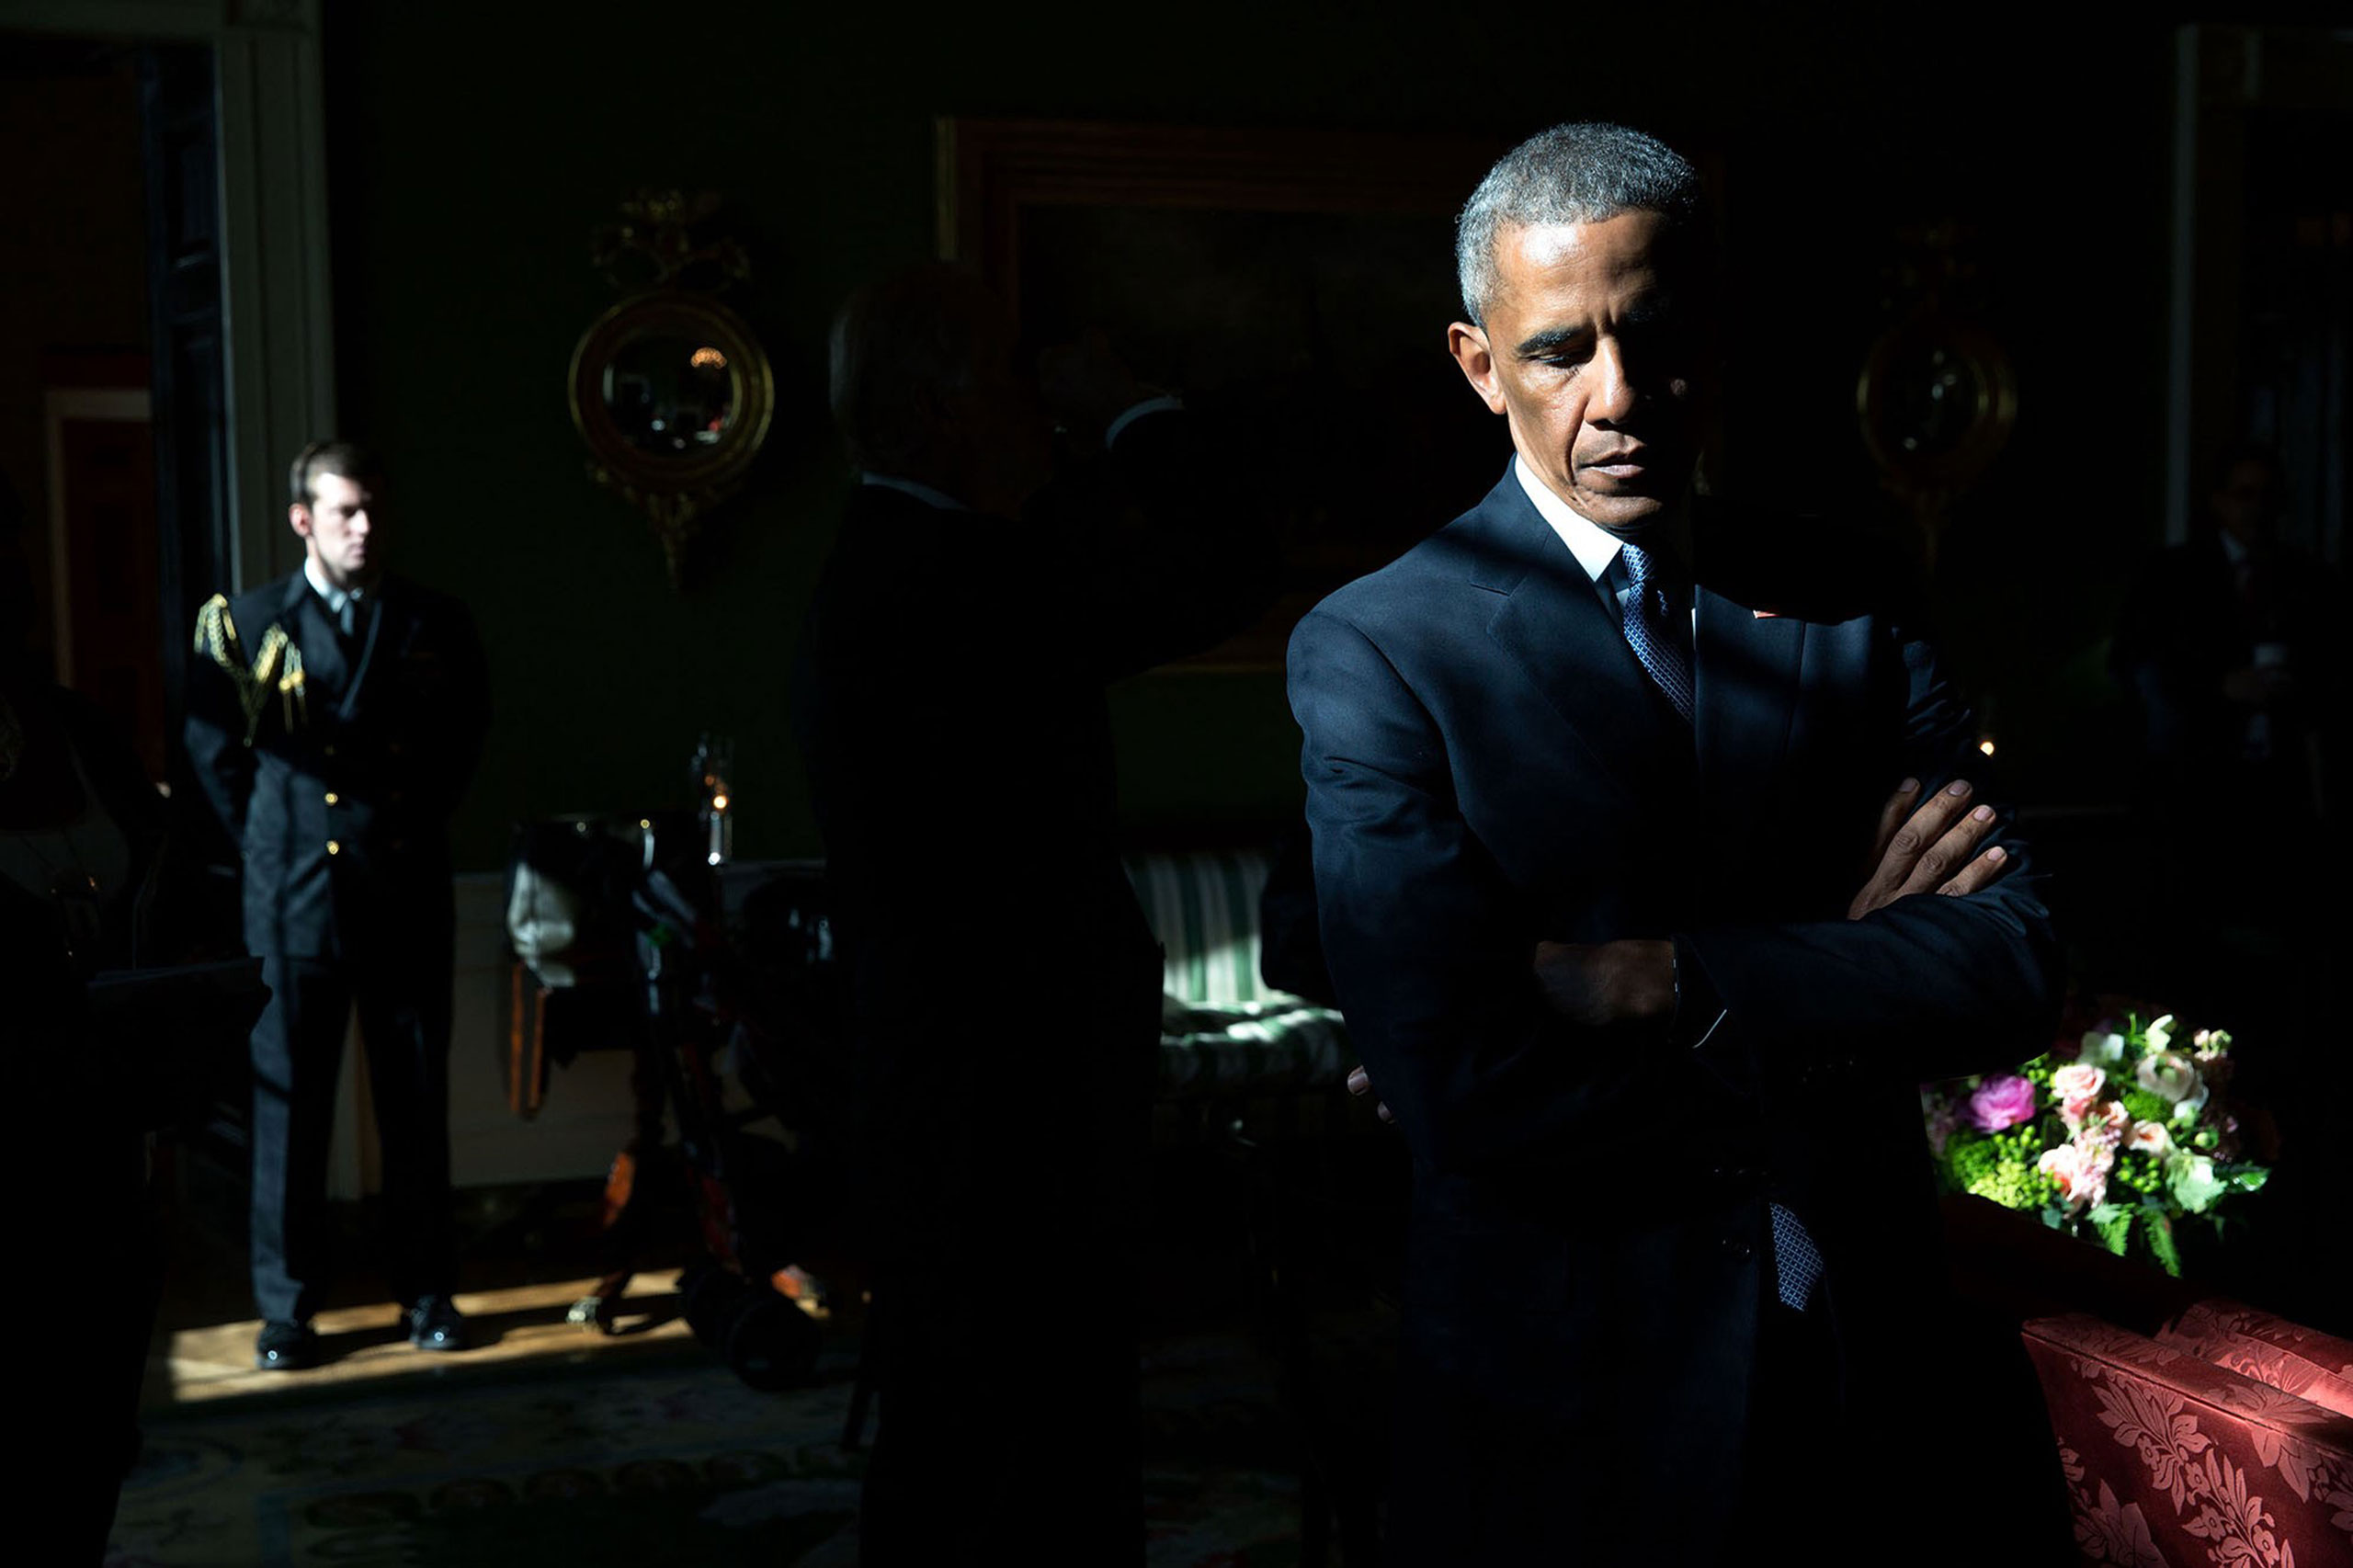 """""""With sunlight streaming through a window in the Green Room, President Obama listens to his introduction by Mark Barden, whose 7-year-old son Daniel was killed during the 2012 shooting at Sandy Hook Elementary School in Newtown, Conn. Later, as he made remarks in the East Room, he began to cry as he recalled the day of the shootings; he called it the worst day of his Presidency,  Jan. 5, 2016."""